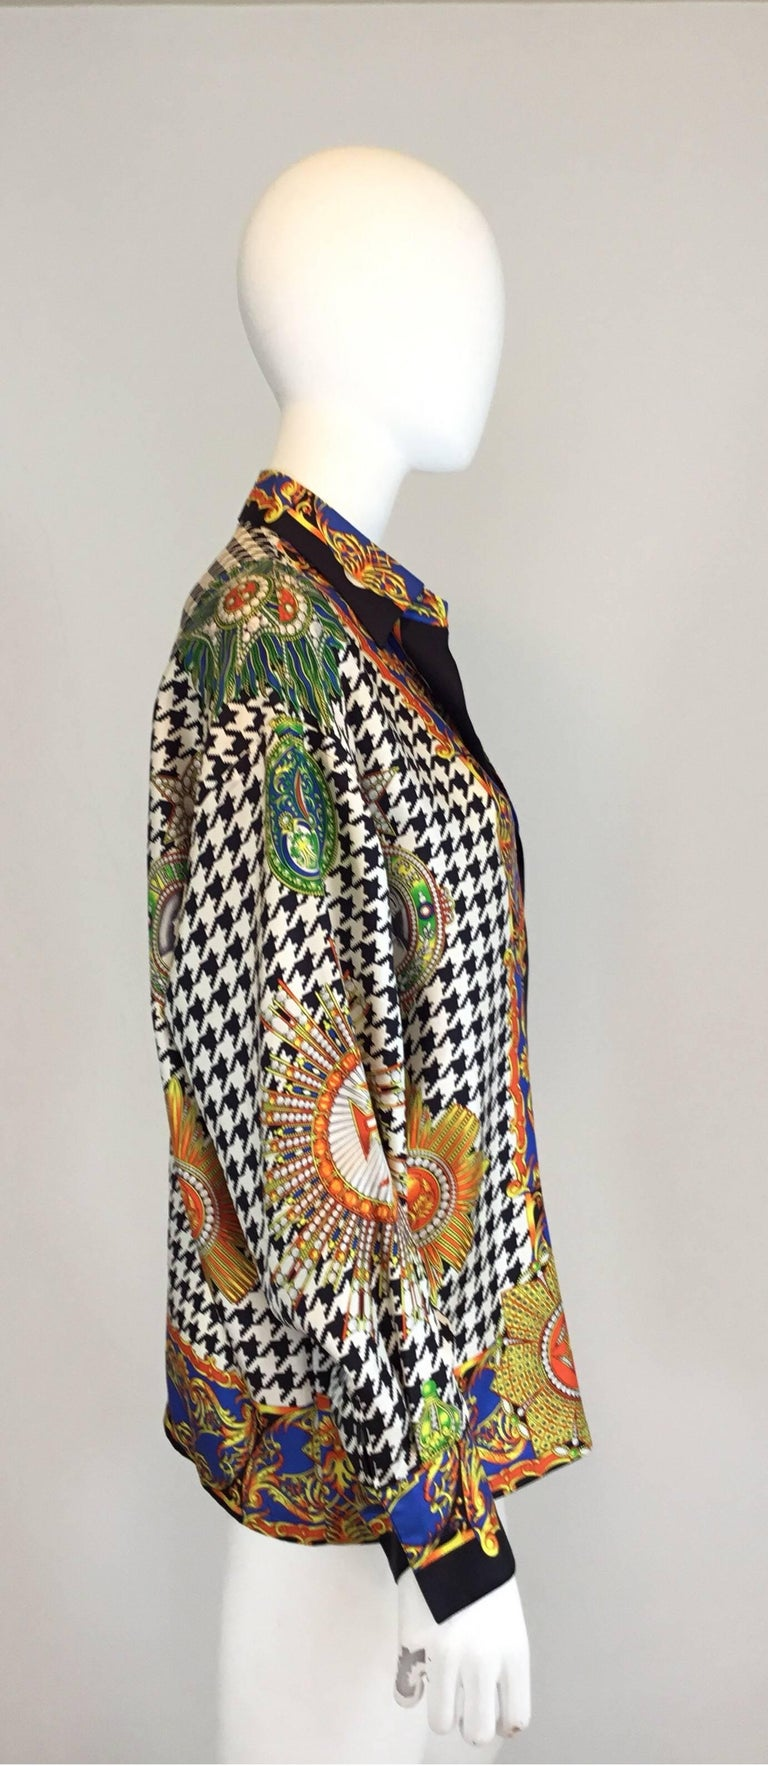 Vintage Versace blouse made of 100% silk features a vibrant and sharp print throughout with button closures along the front and on the cuffs. Bold graphic print. Boxy slouchy oversized fit. Miami era lifetime Versace. Made in Italy.  bust-